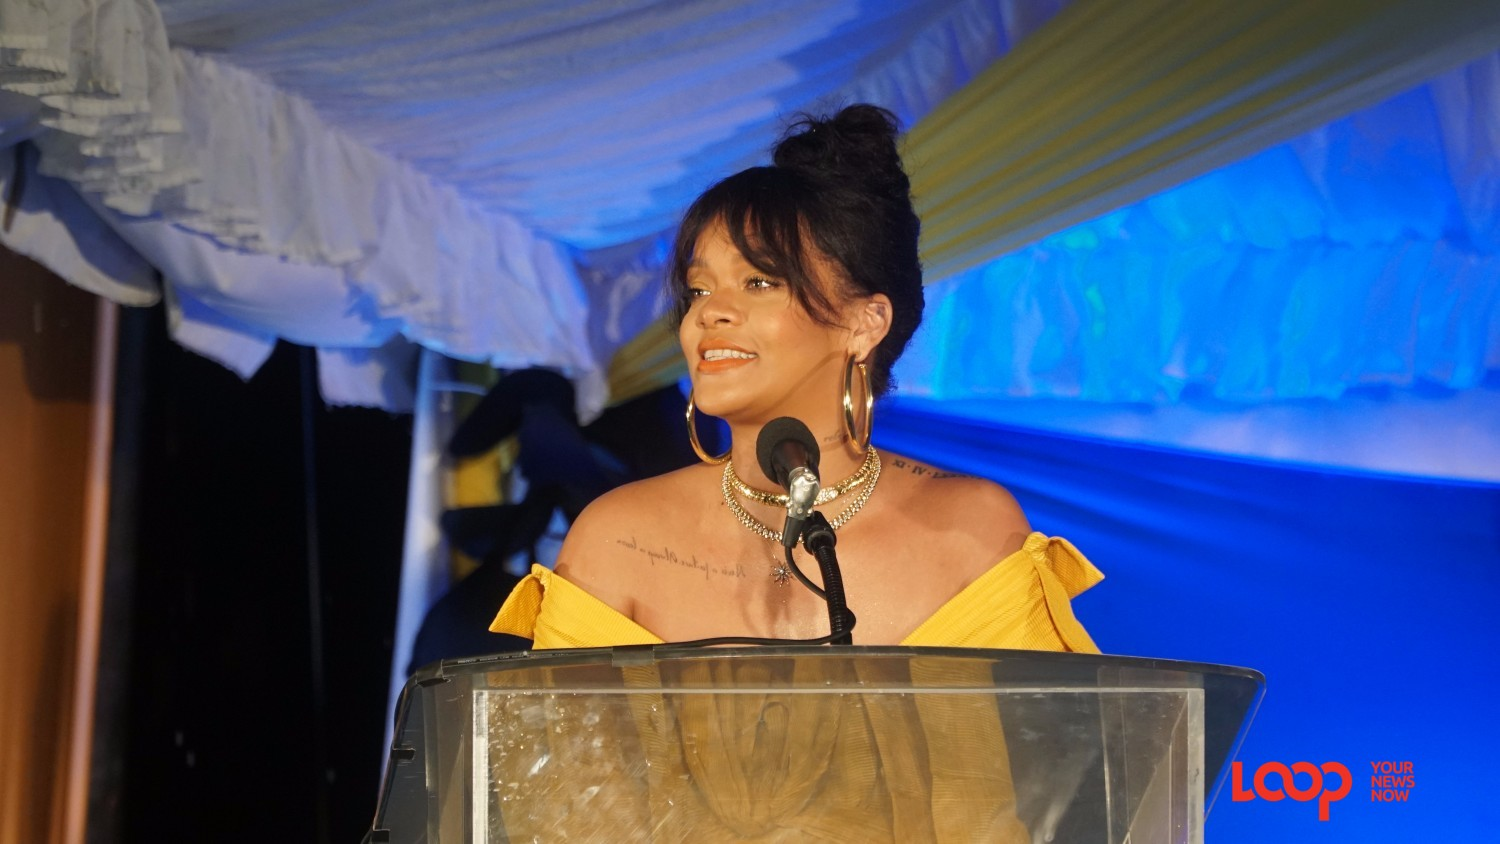 Rihanna speaking at the podium during the renaming ceremony at Rihanna Drive.